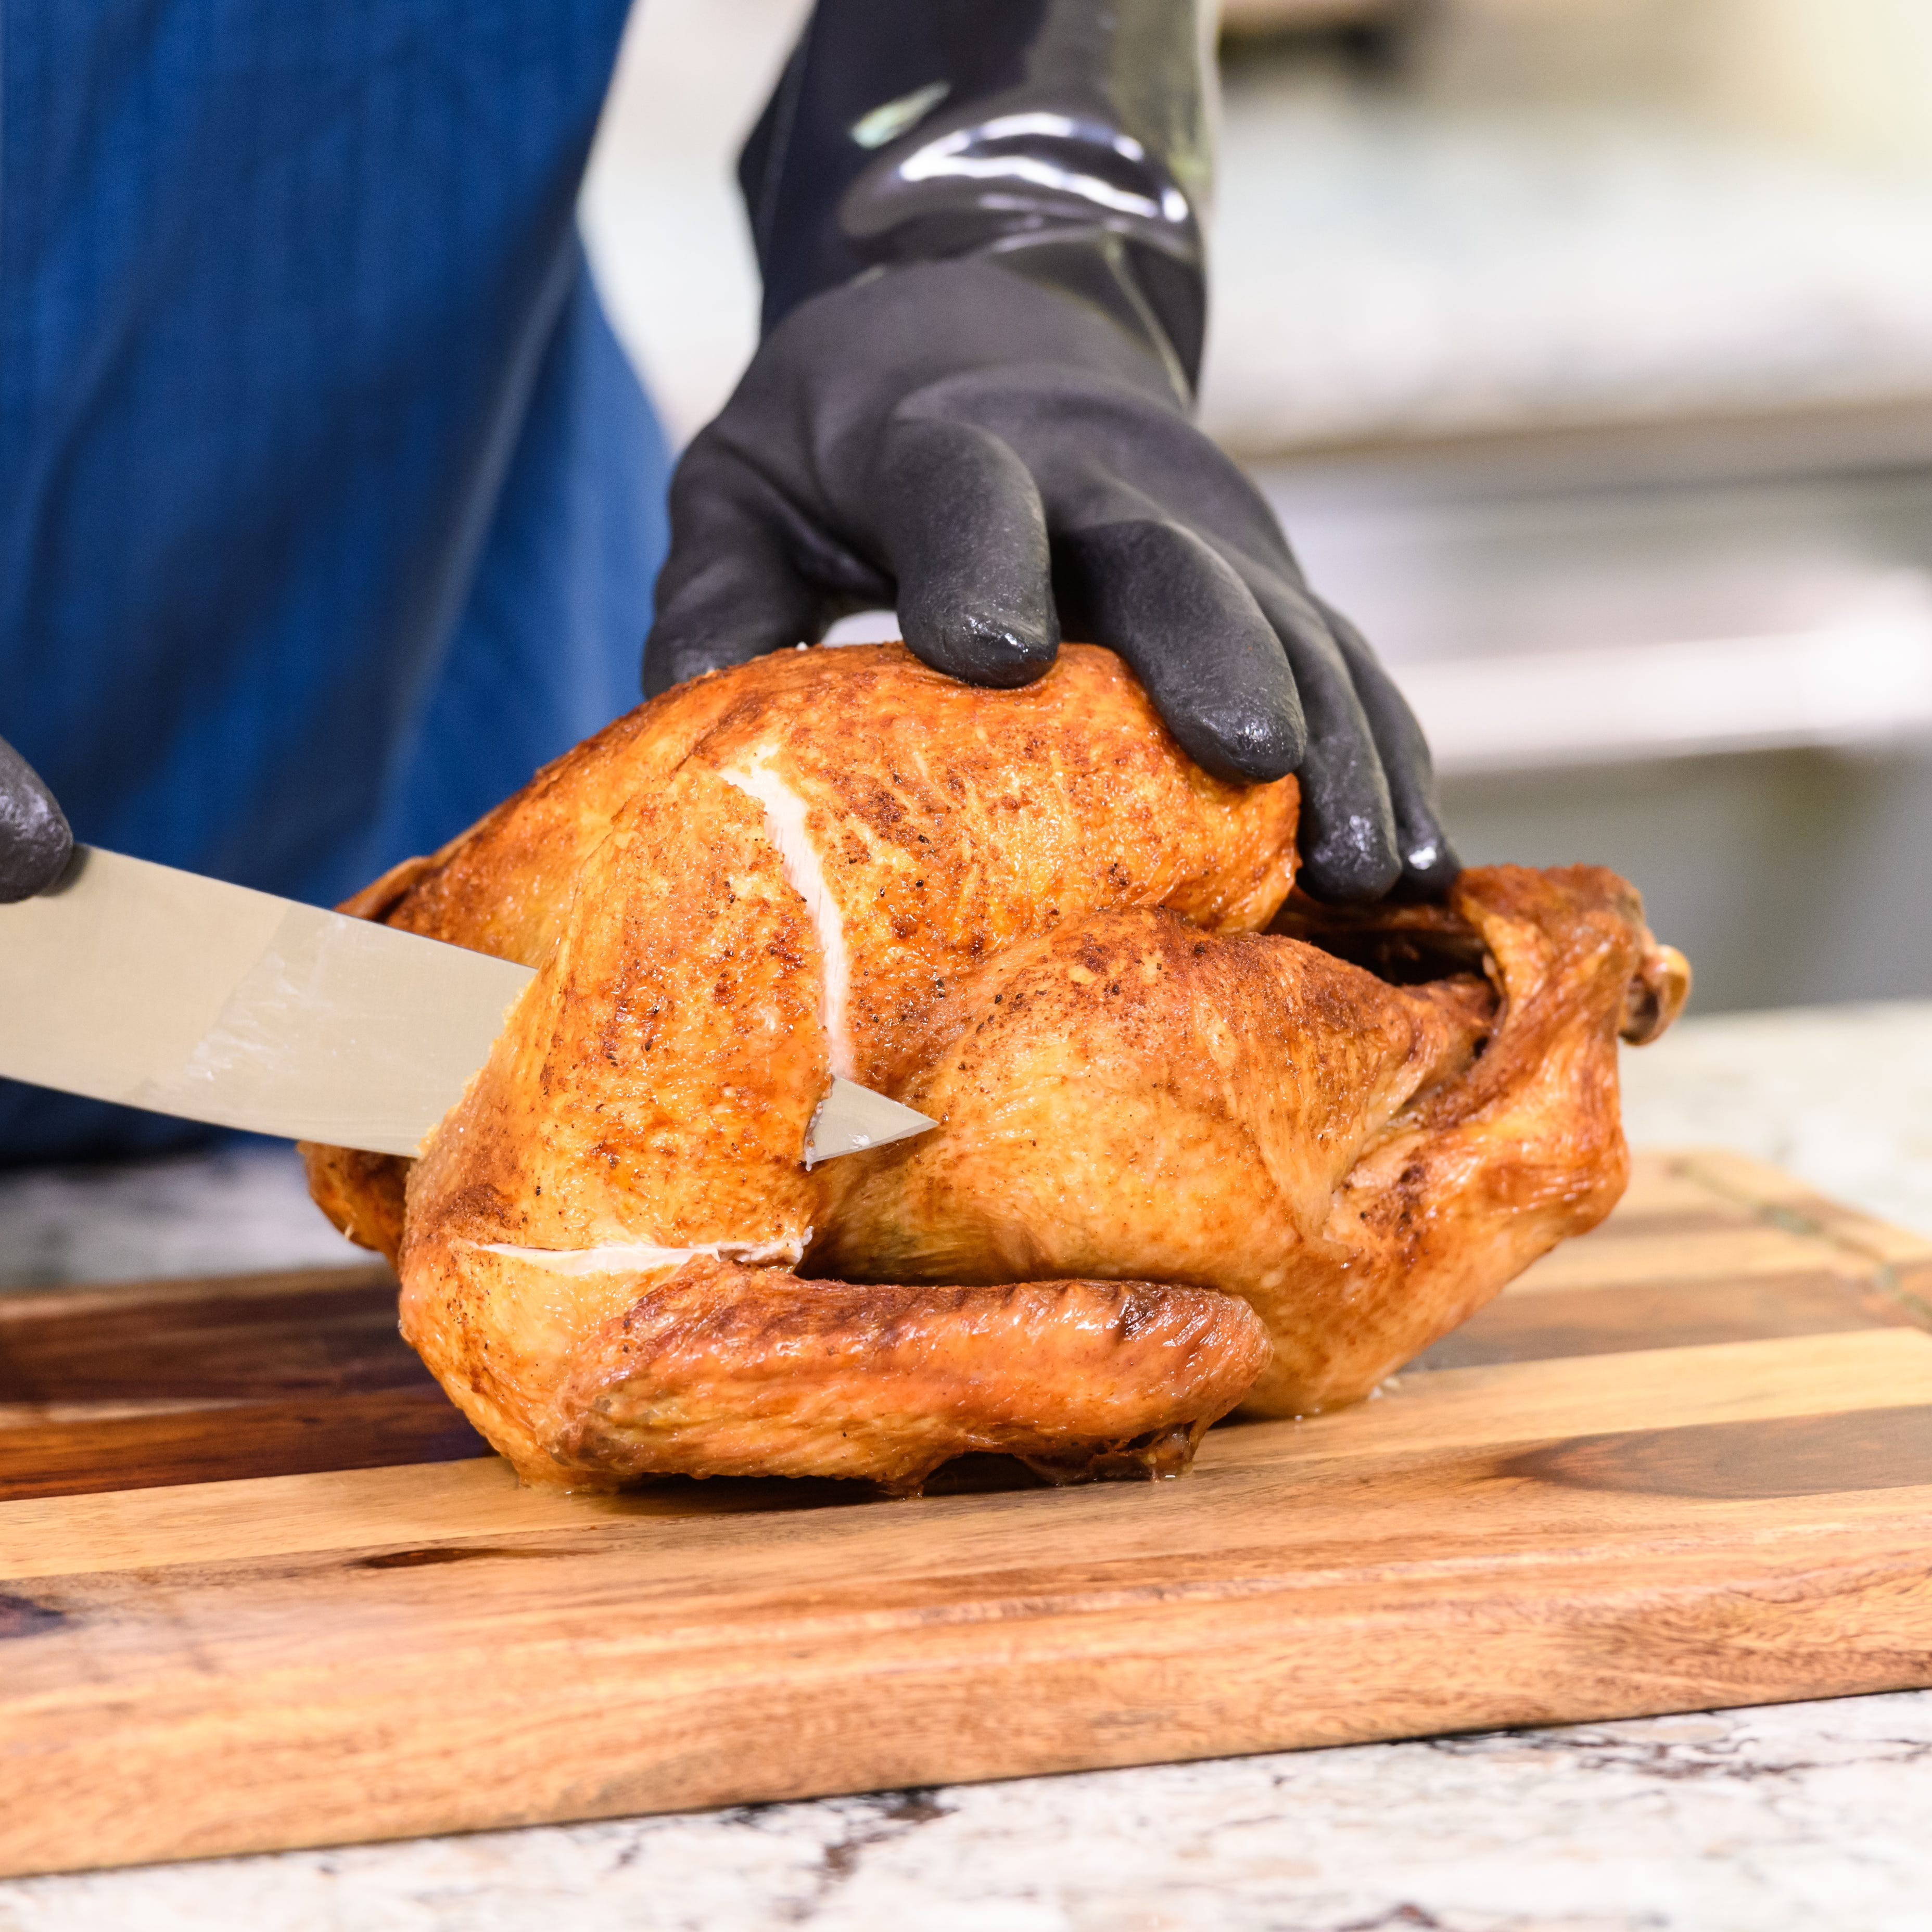 6 tips for frying the perfect turkey for your Thanksgiving feast